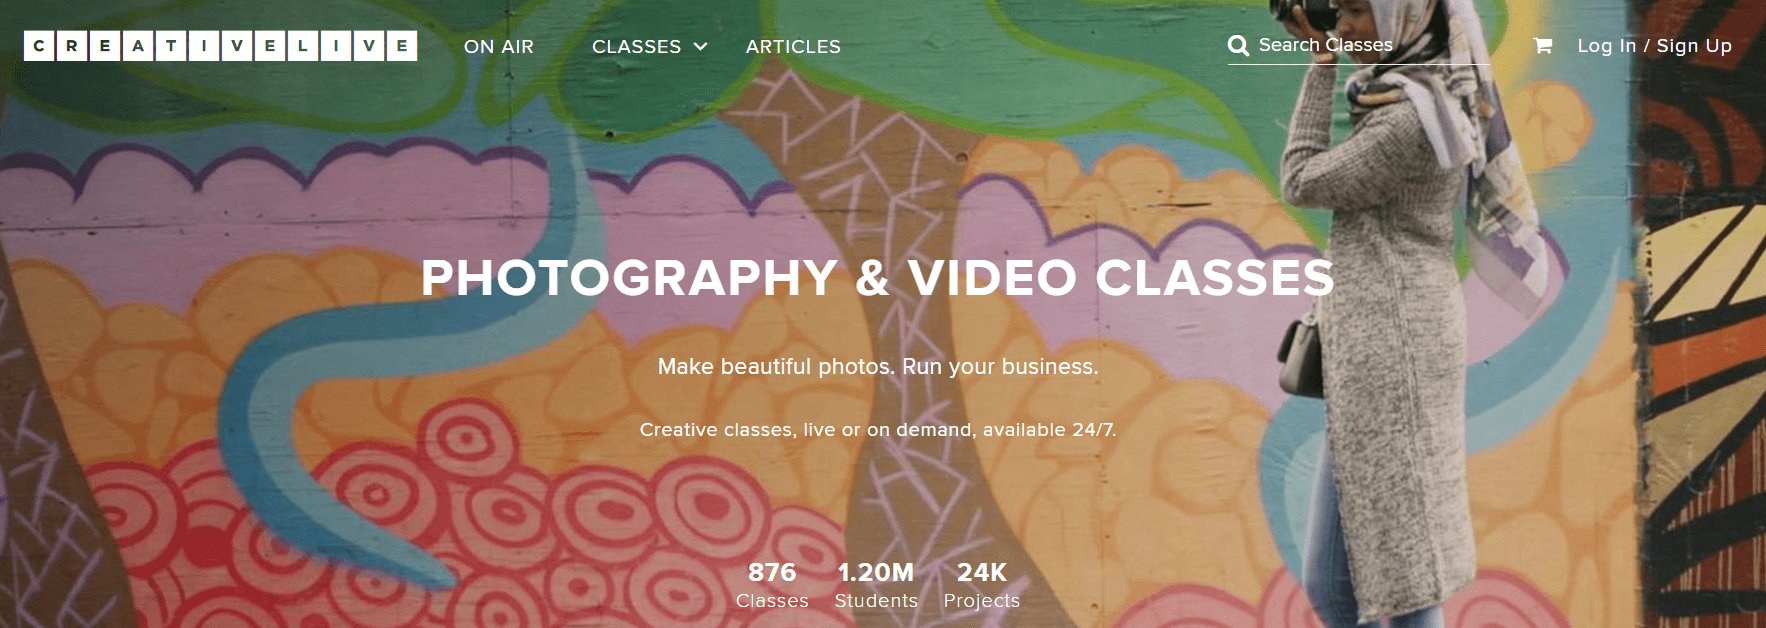 CreativeLive's List of Photography & Videography Classes